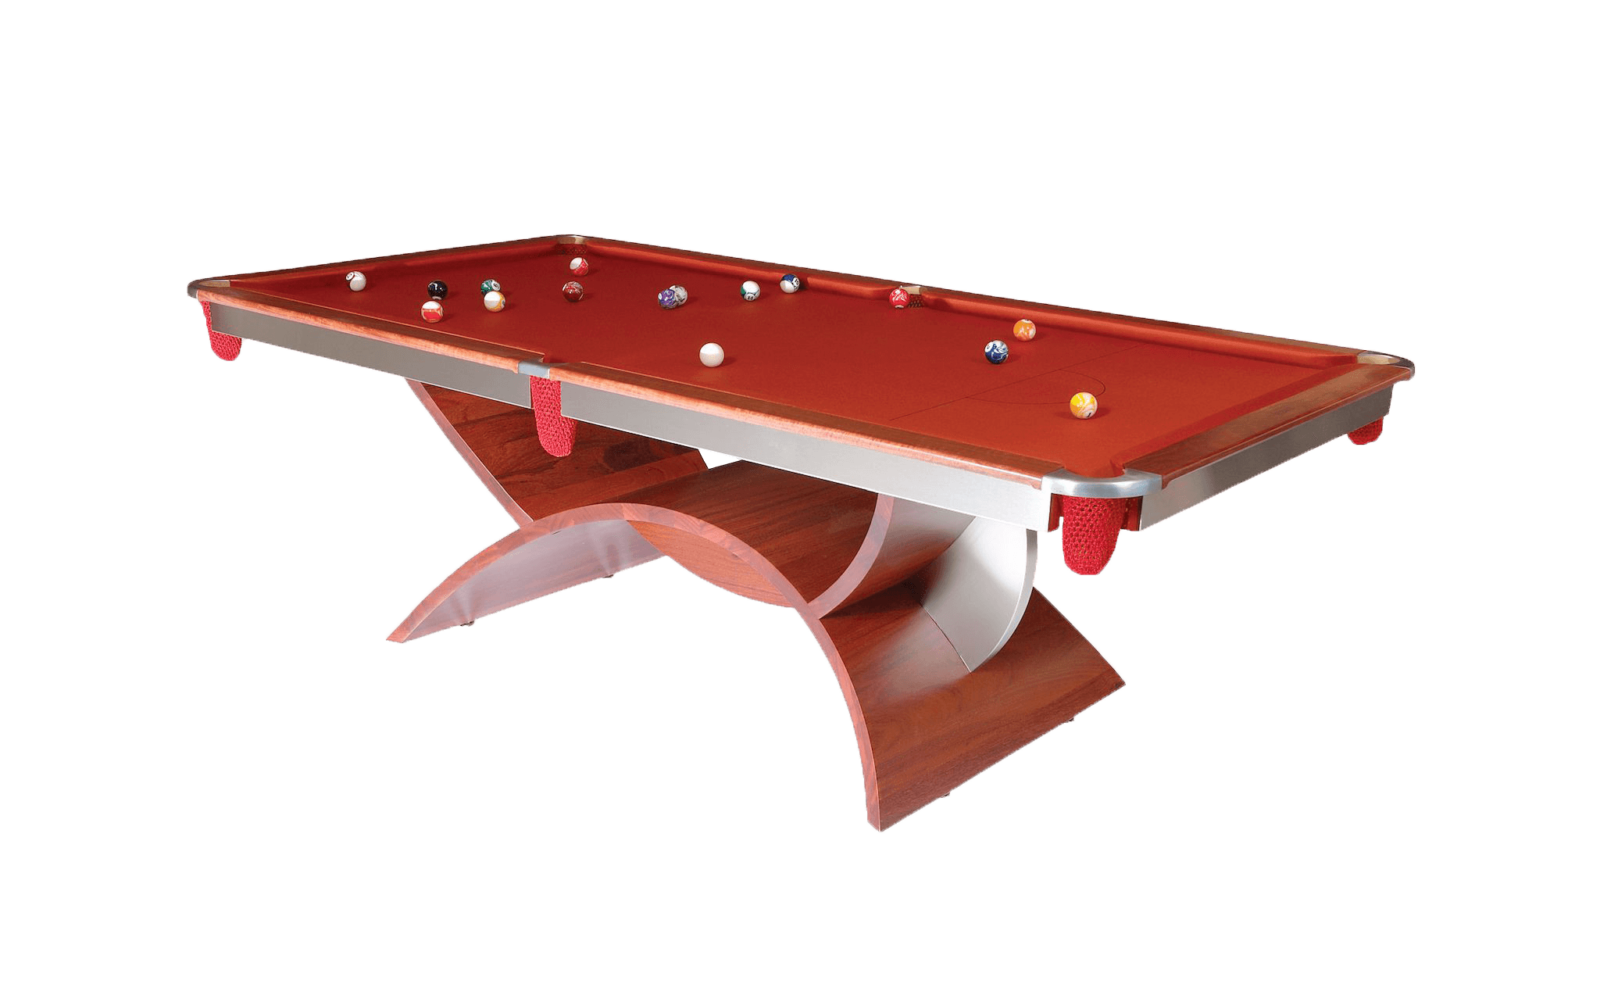 Superieur Homepage Slider Quedos Pool Tables 04 800x493 Homepage Slider Quedos